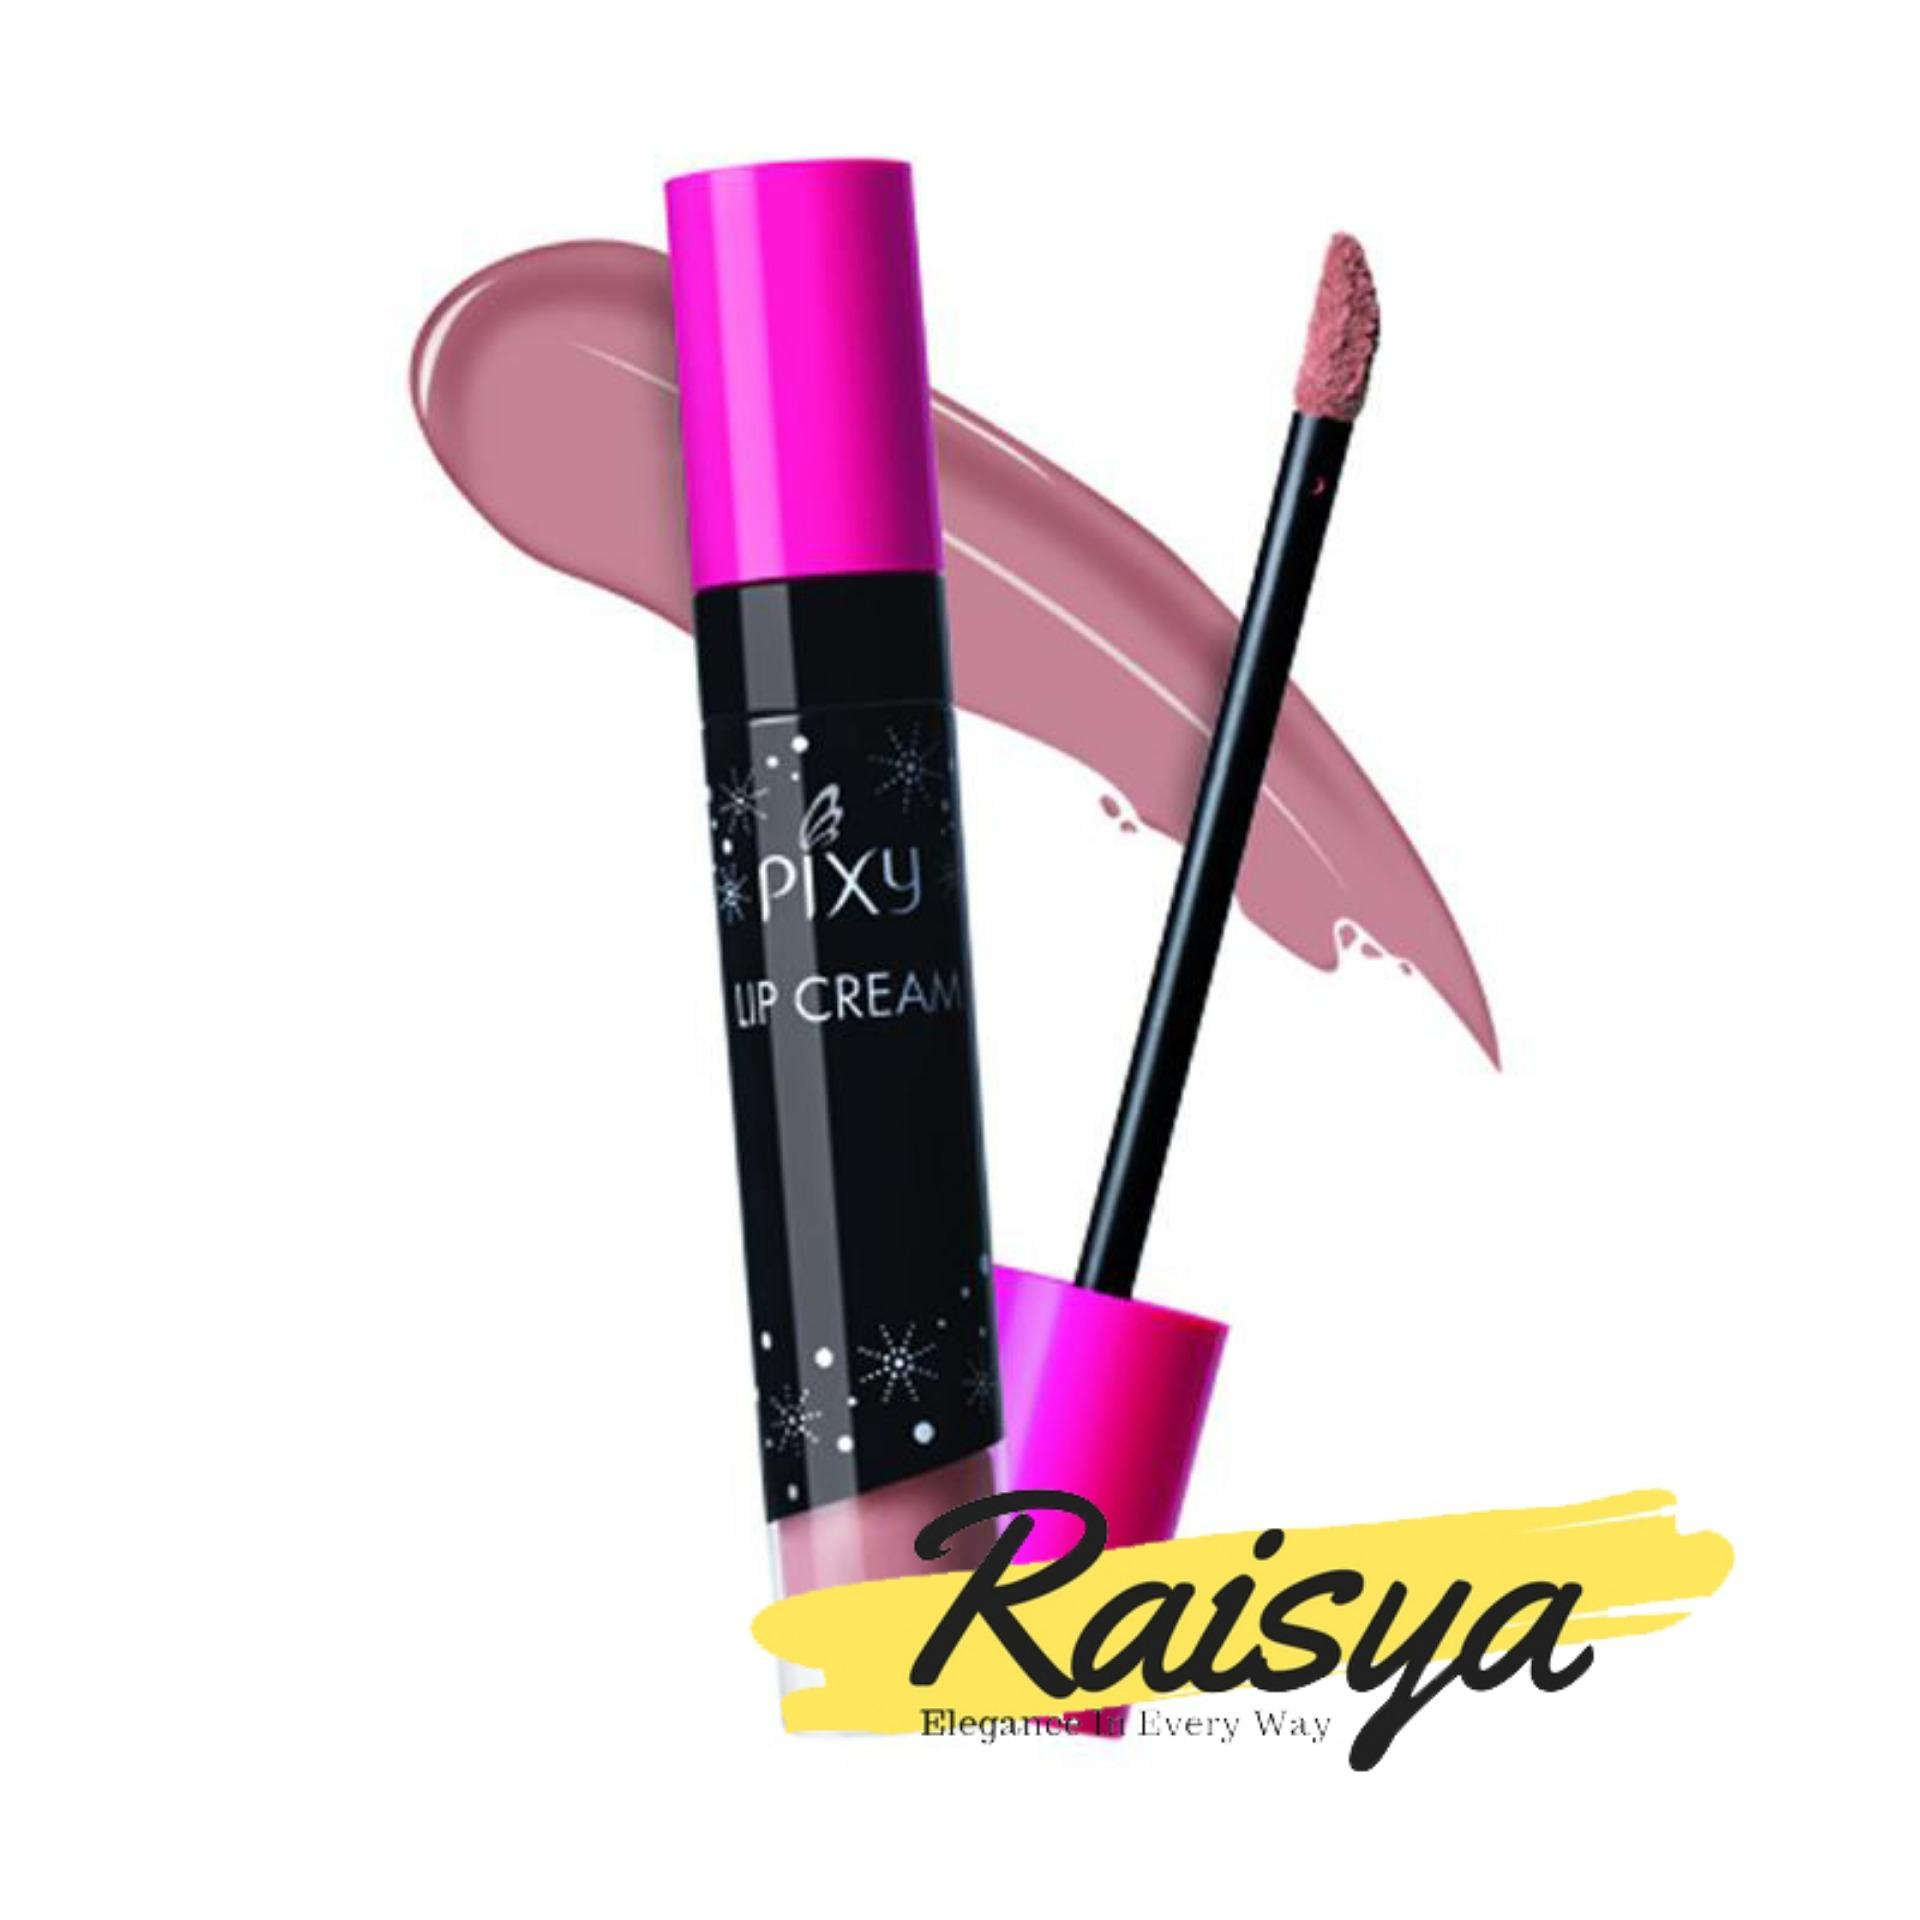 Pixy Lip Cream No. 08 - Delicate Pink